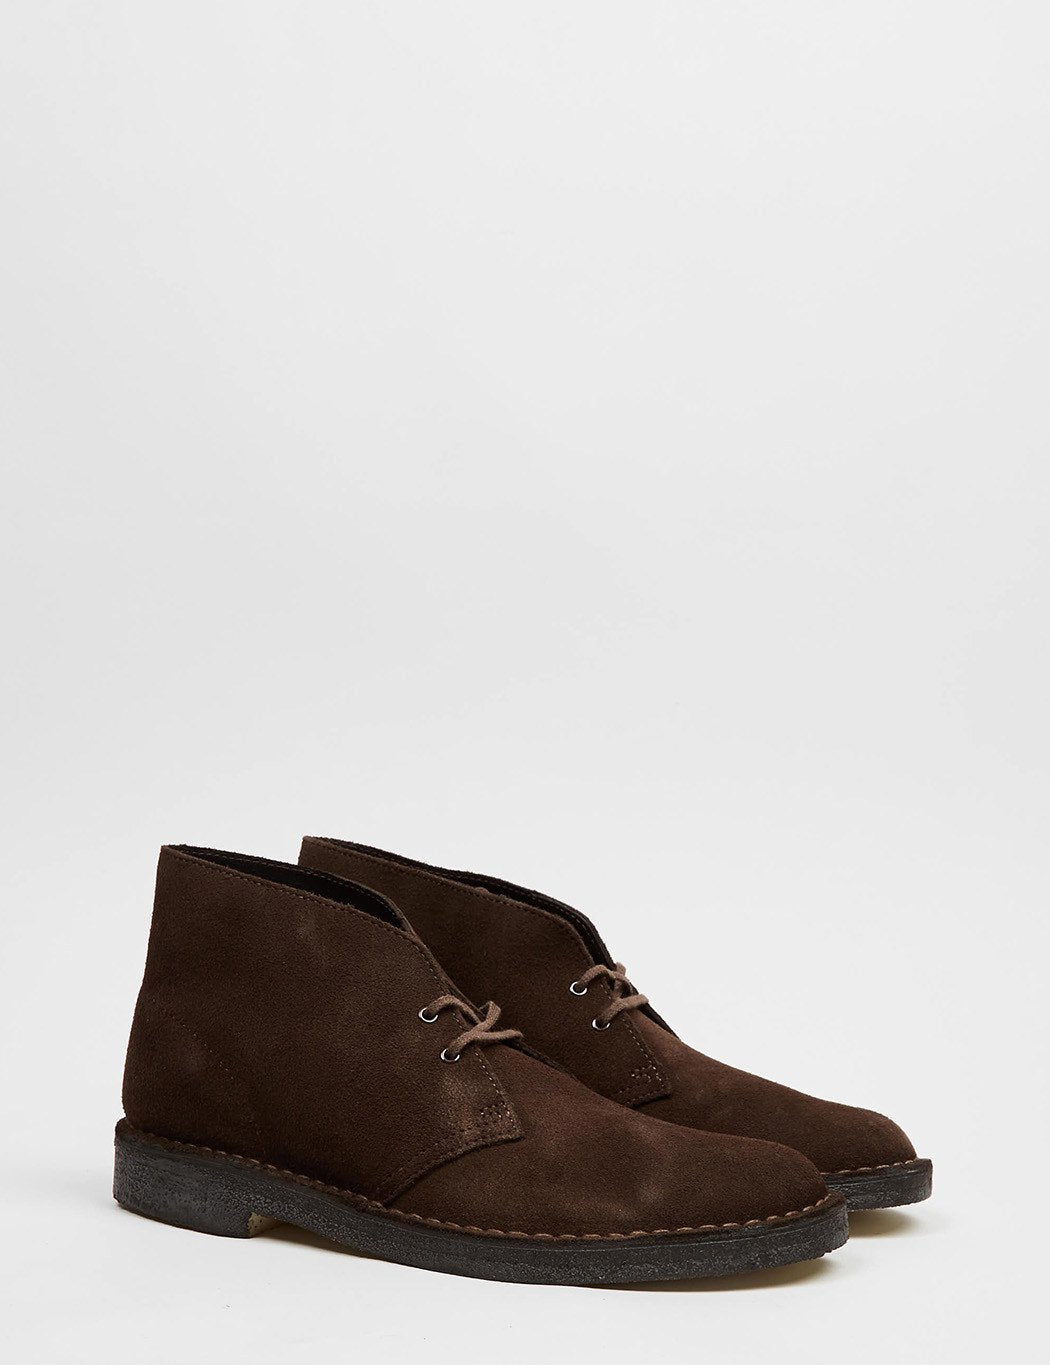 Clarks Originals Desert Boots - Brown